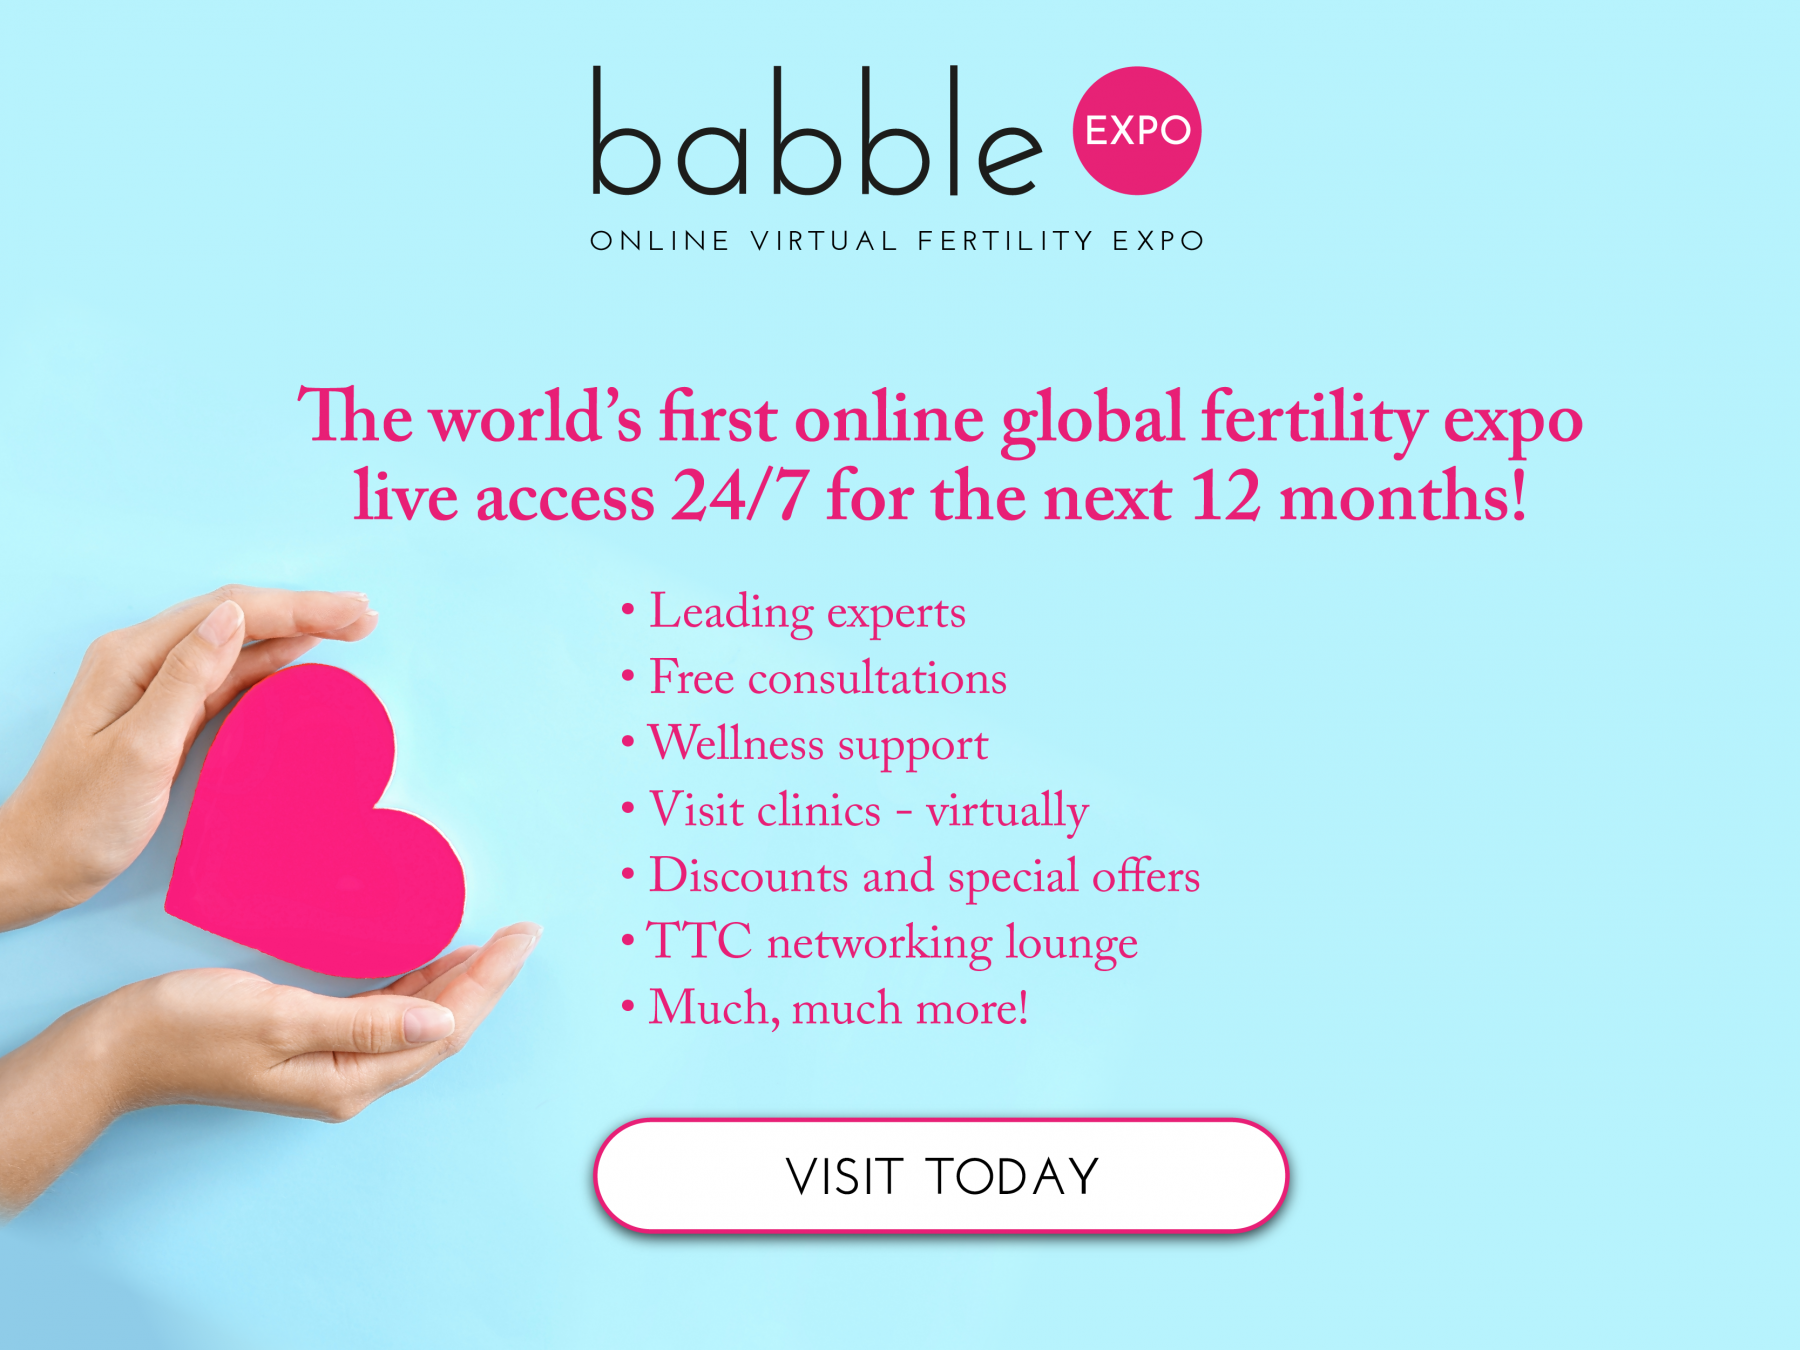 Babble-Expo-banner-ads-800x600-and-1170x145-banners-08.png